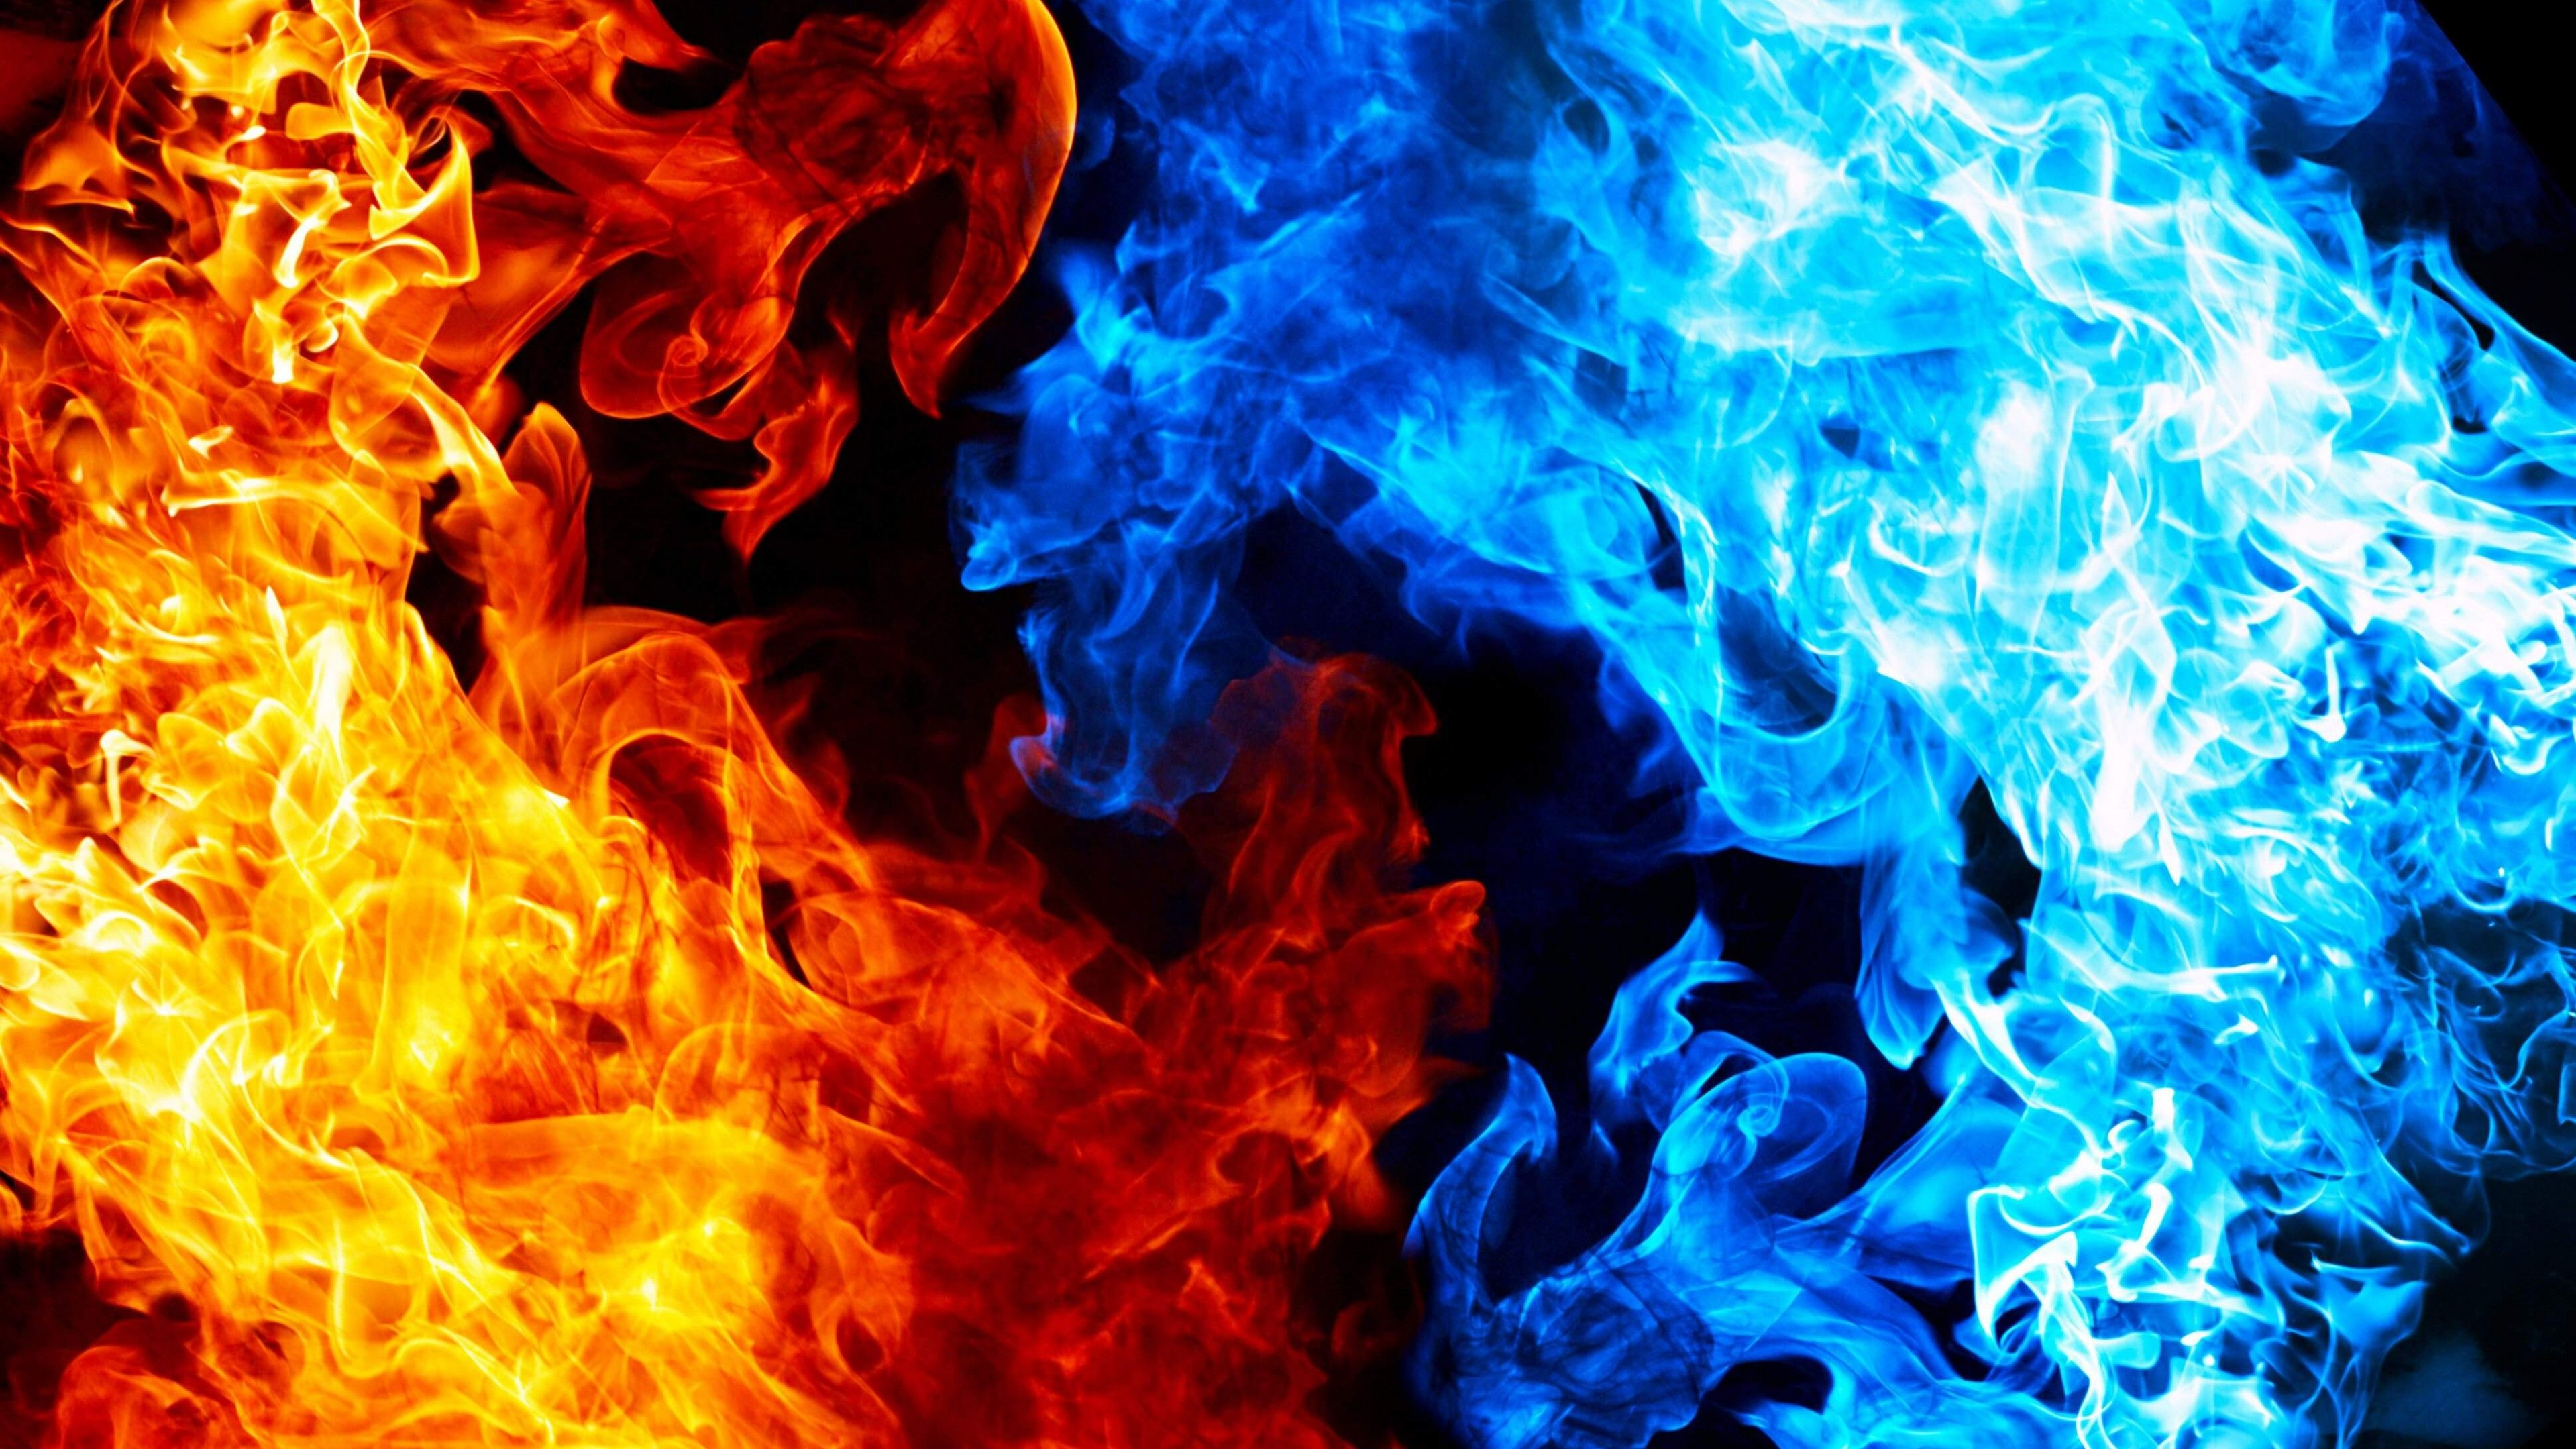 3840x2160 - Red and Blue Fire 21